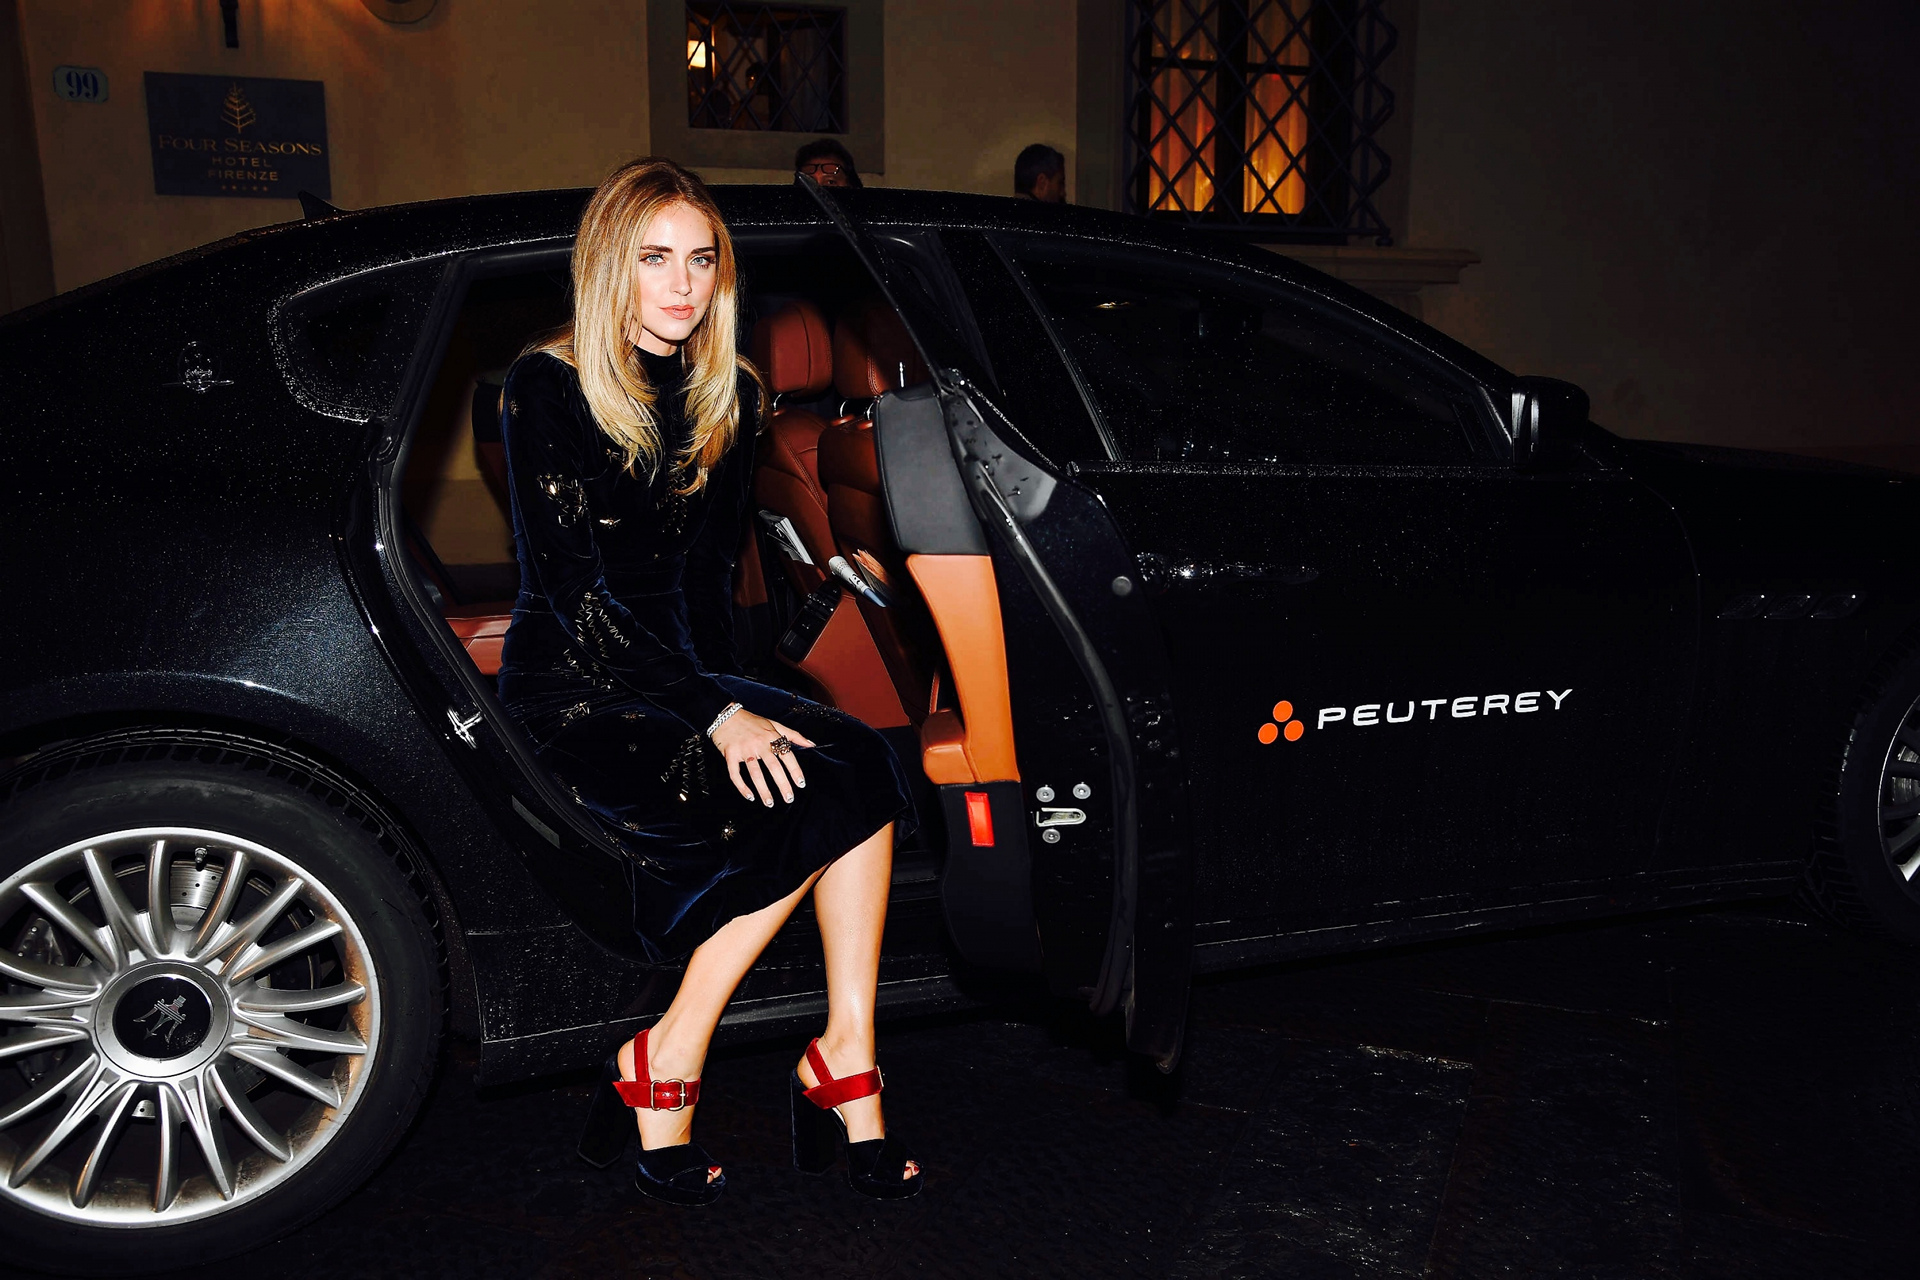 Chiara Ferragni with the Quattroporte arrives at the INFERNO Premiere © Fiat Chrysler Automobiles N.V. Chiara Ferragni with the Quattroporte arrives at the INFERNO Premiere © Fiat Chrysler Automobiles N.V.